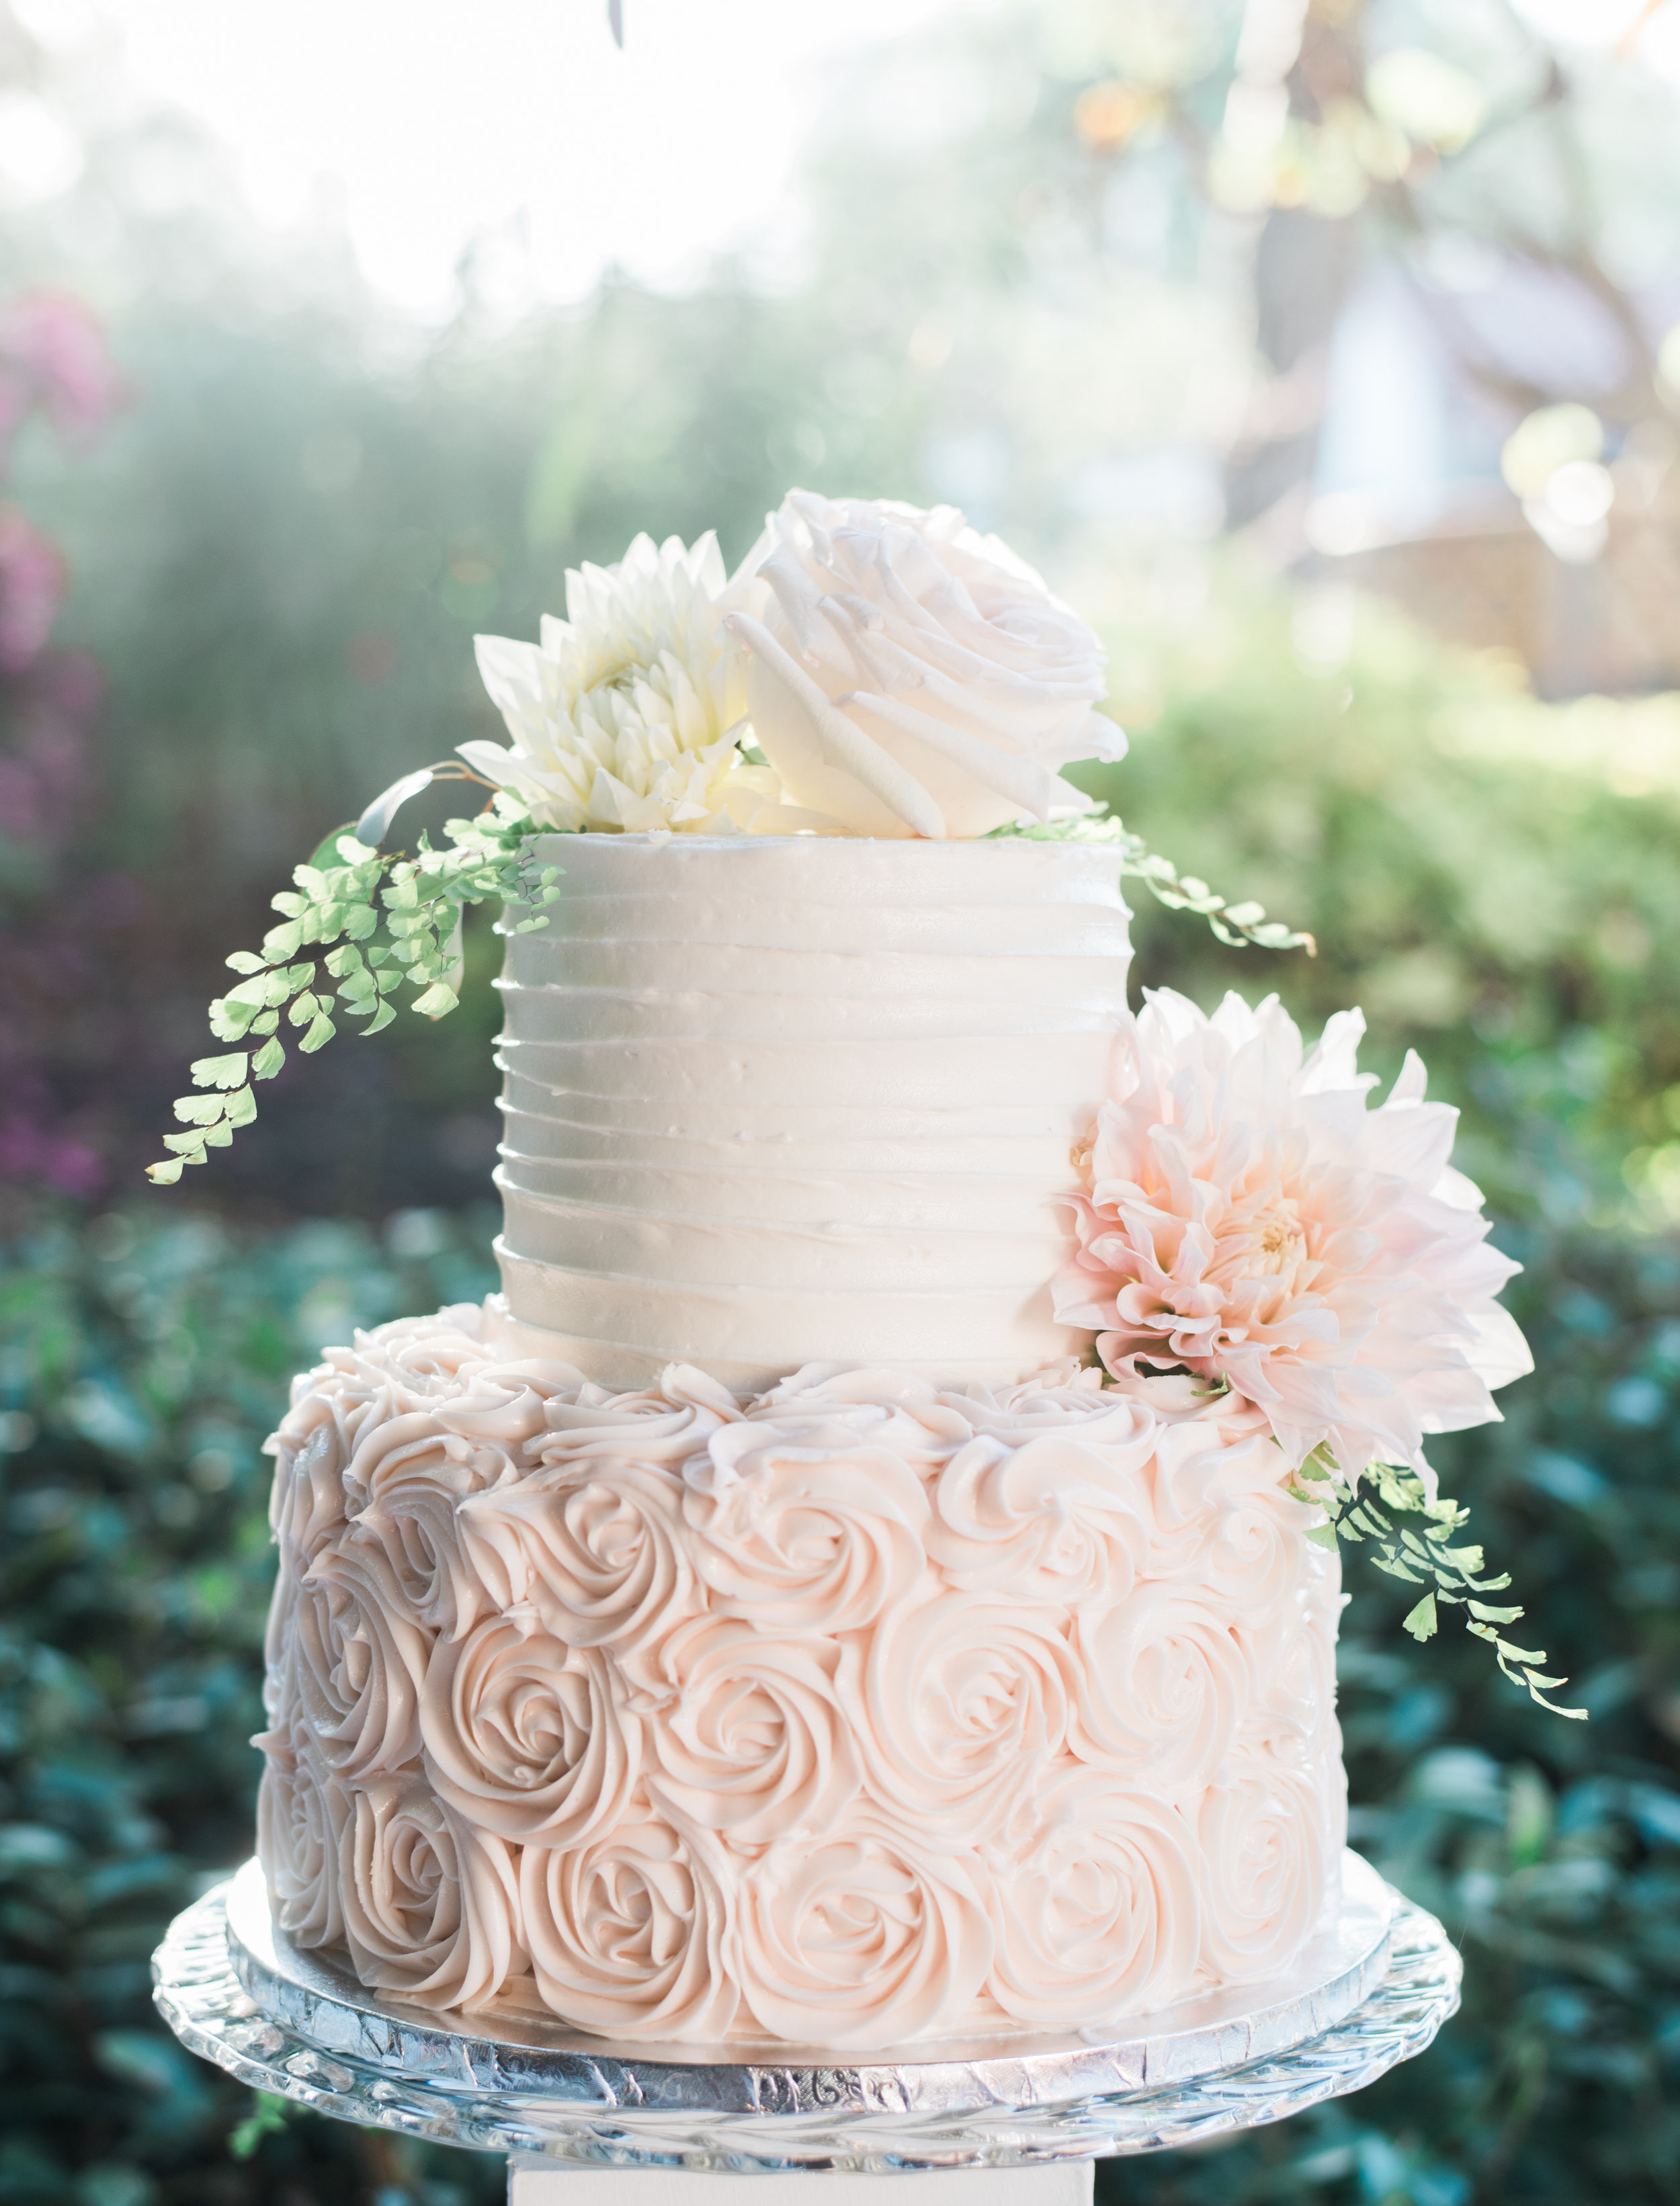 blush and white wedding cake with fresh flowers